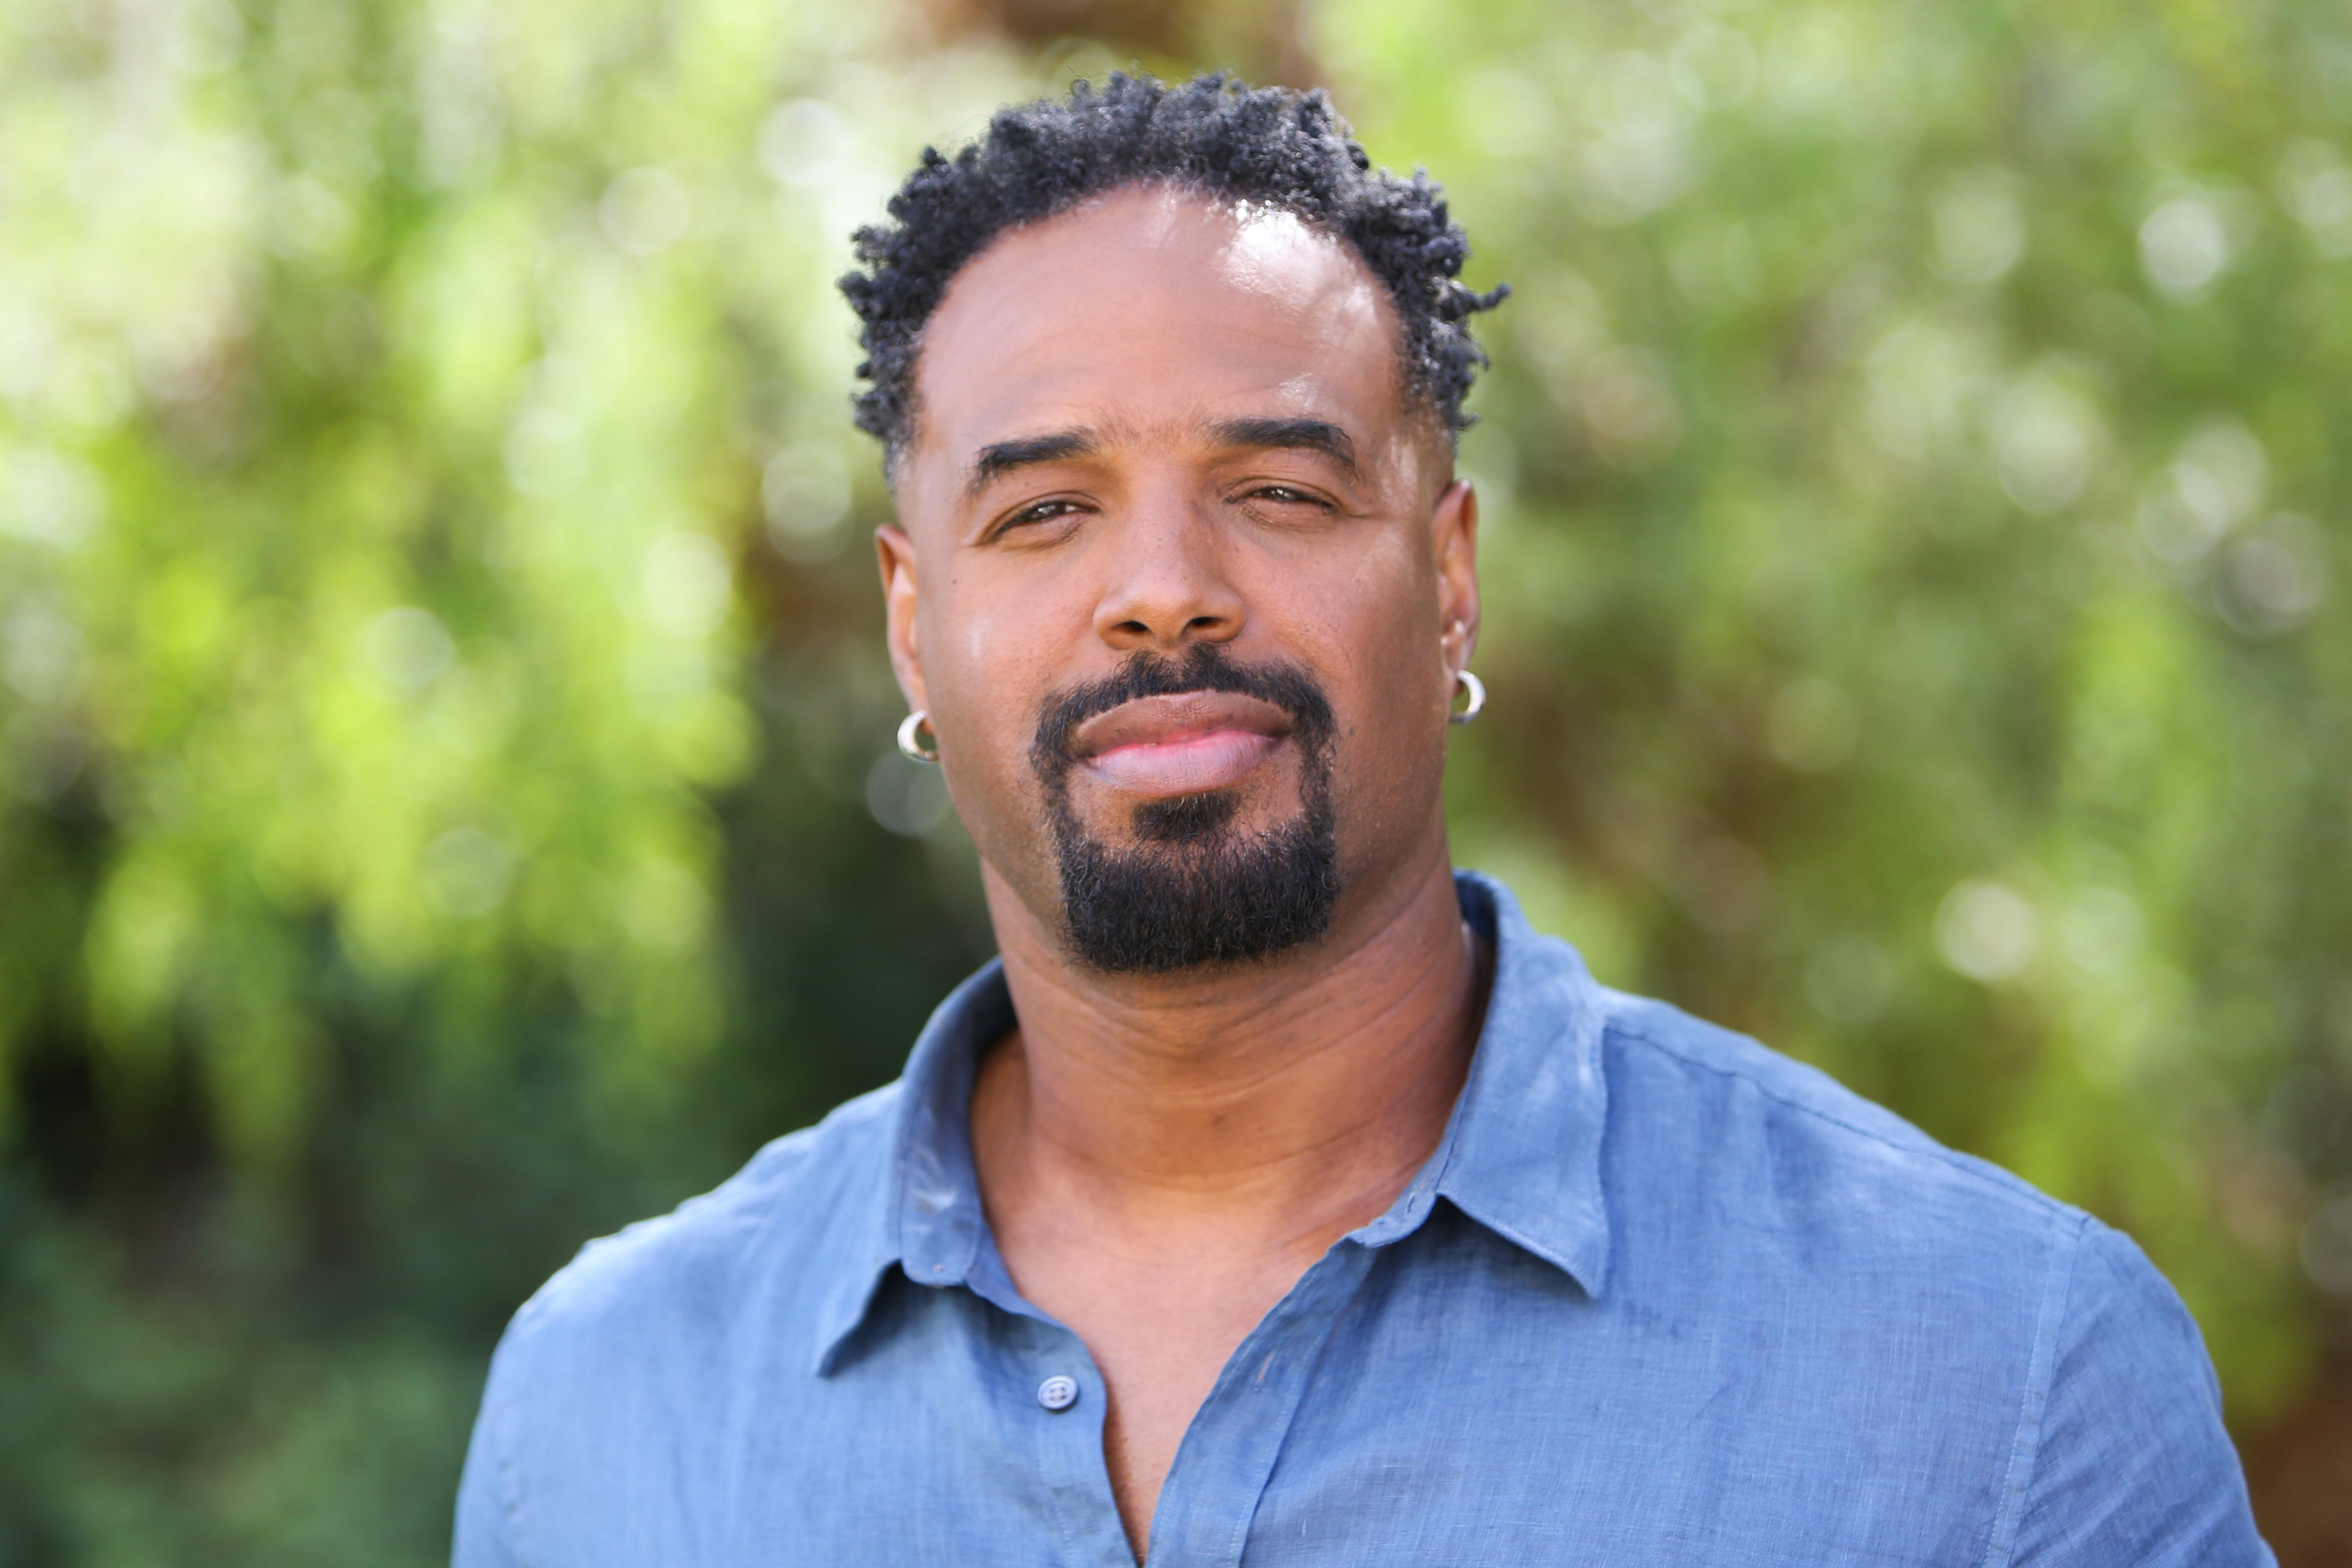 """Shawn Wayans visits Hallmark Channel's """"Home & Family"""" at Universal Studios Hollywood on September 11, 2019 